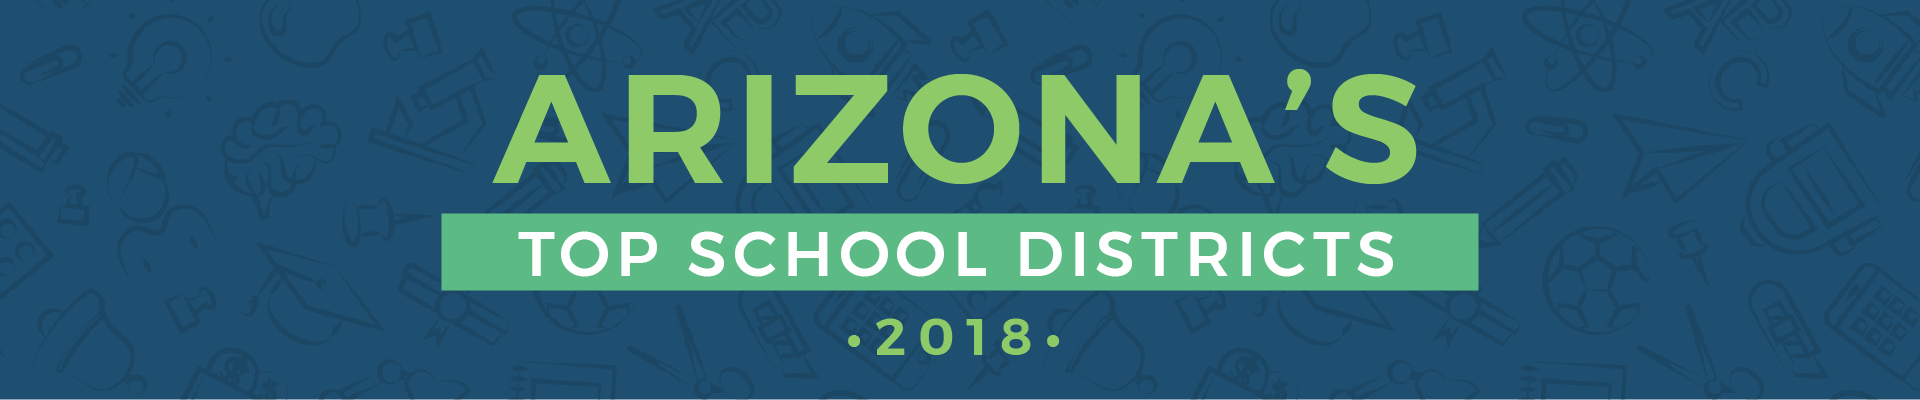 Top School Districts in Arizona, 2018 | BackgroundChecks org